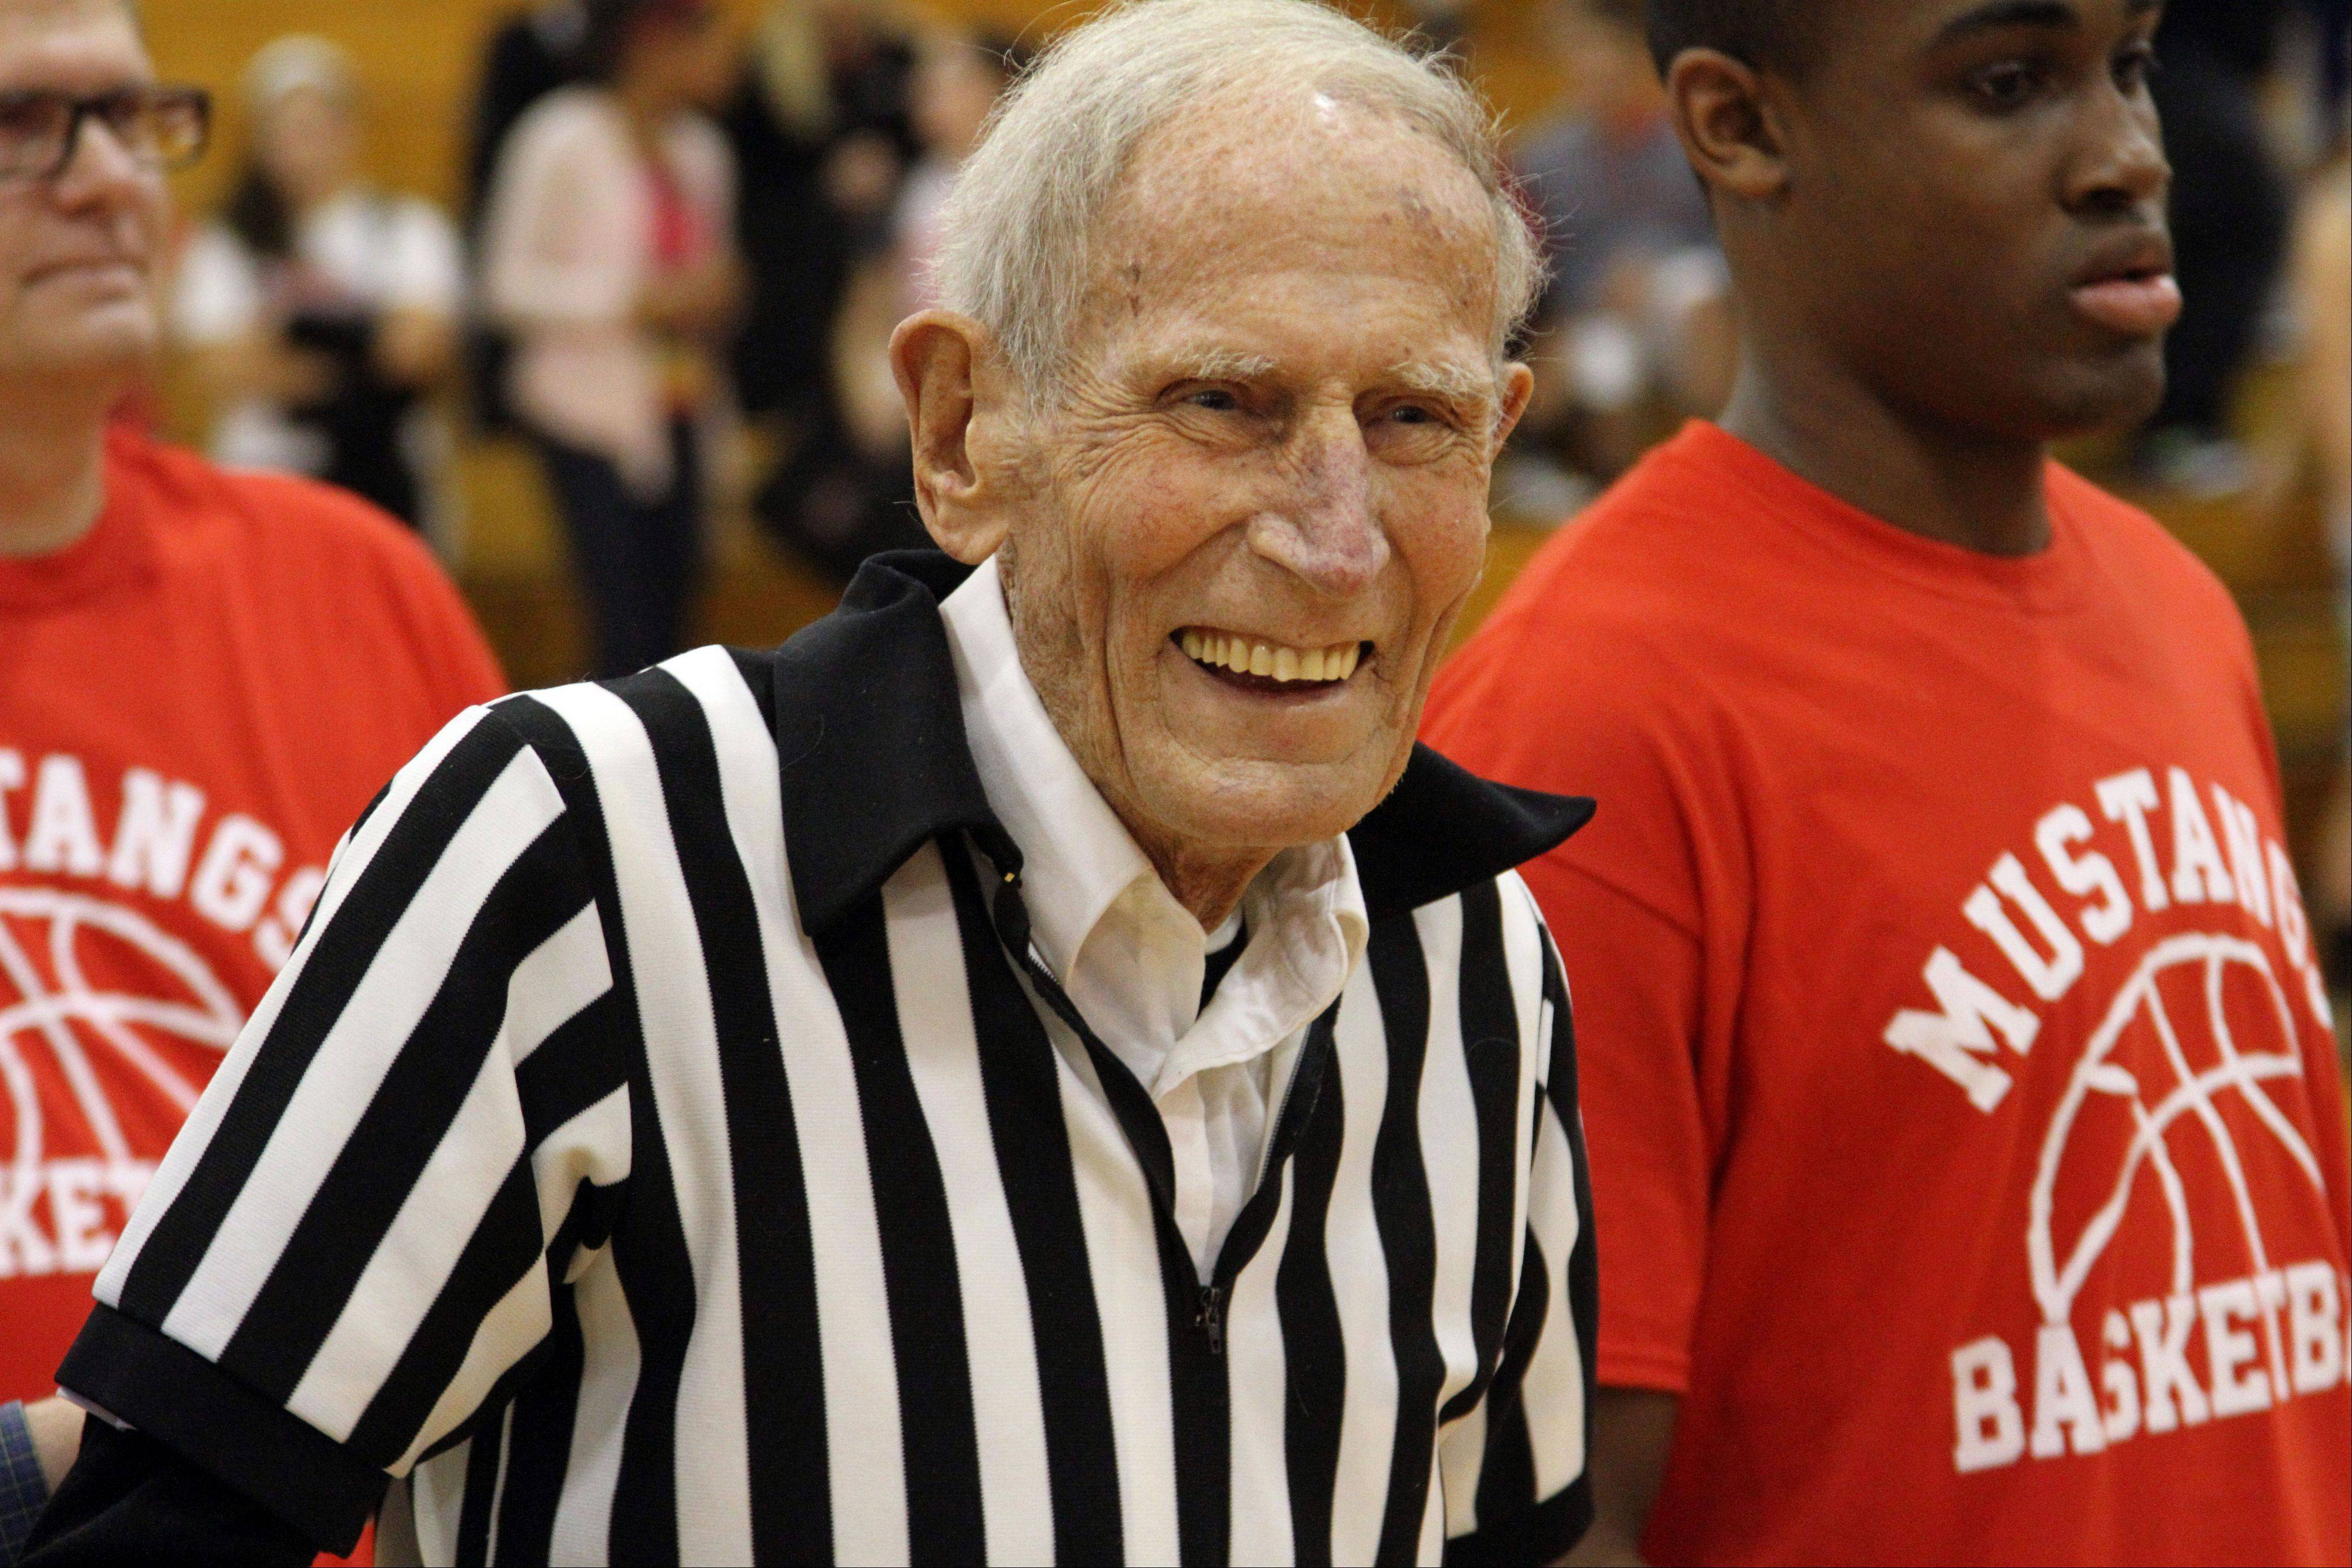 Basketball scorekeeper Jim Ackley is all smiles after being honored for 50 years of service at Mundelein High School. .